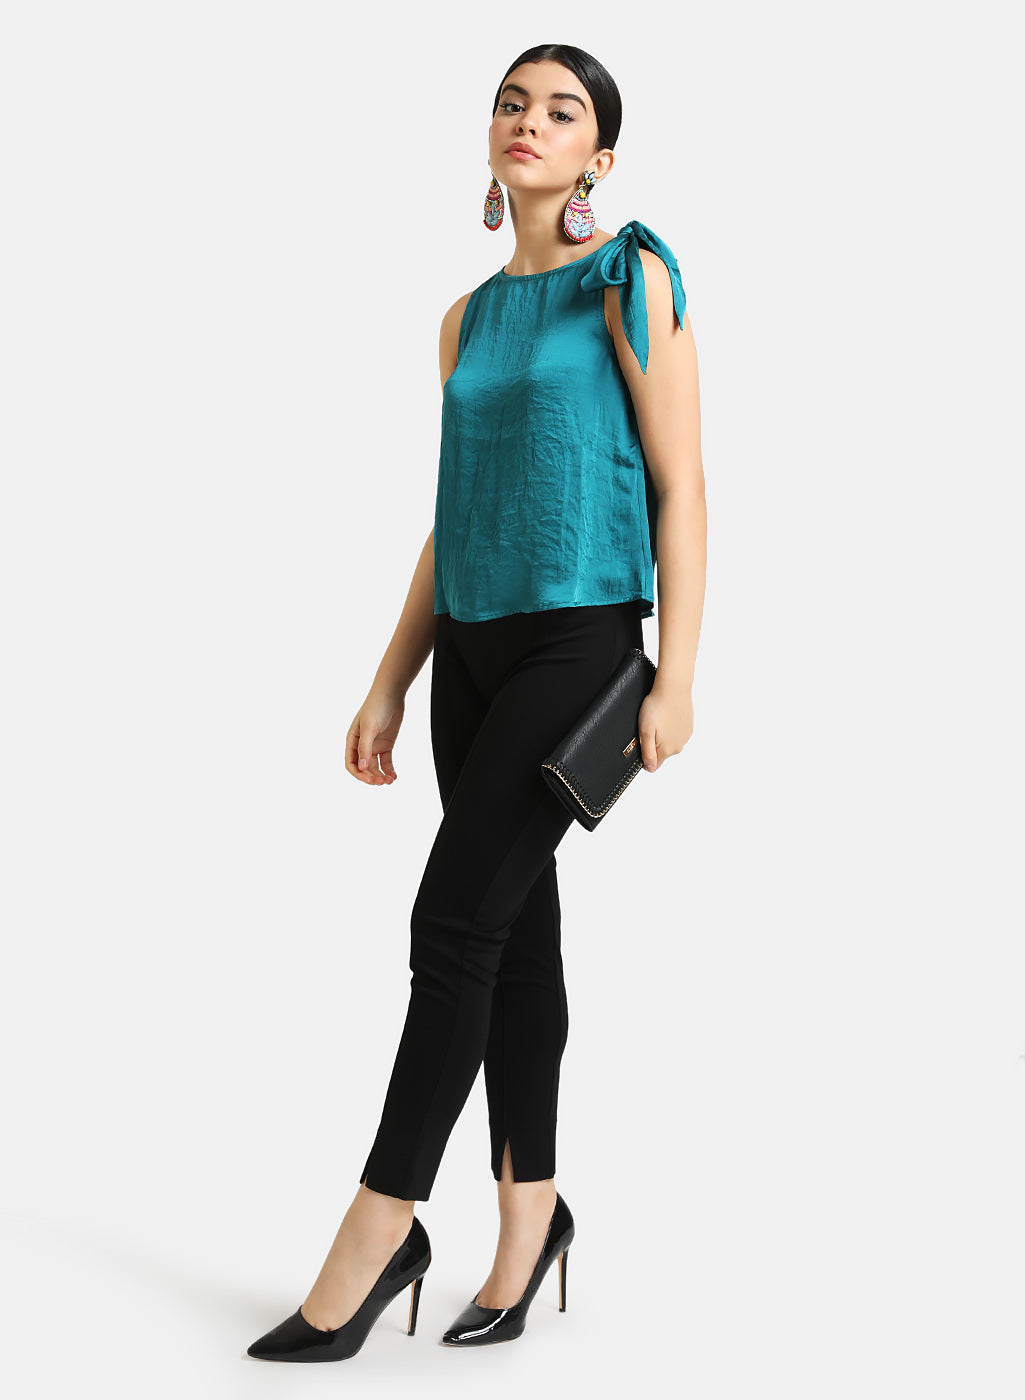 Cowl Neck top with shoulder tieknot